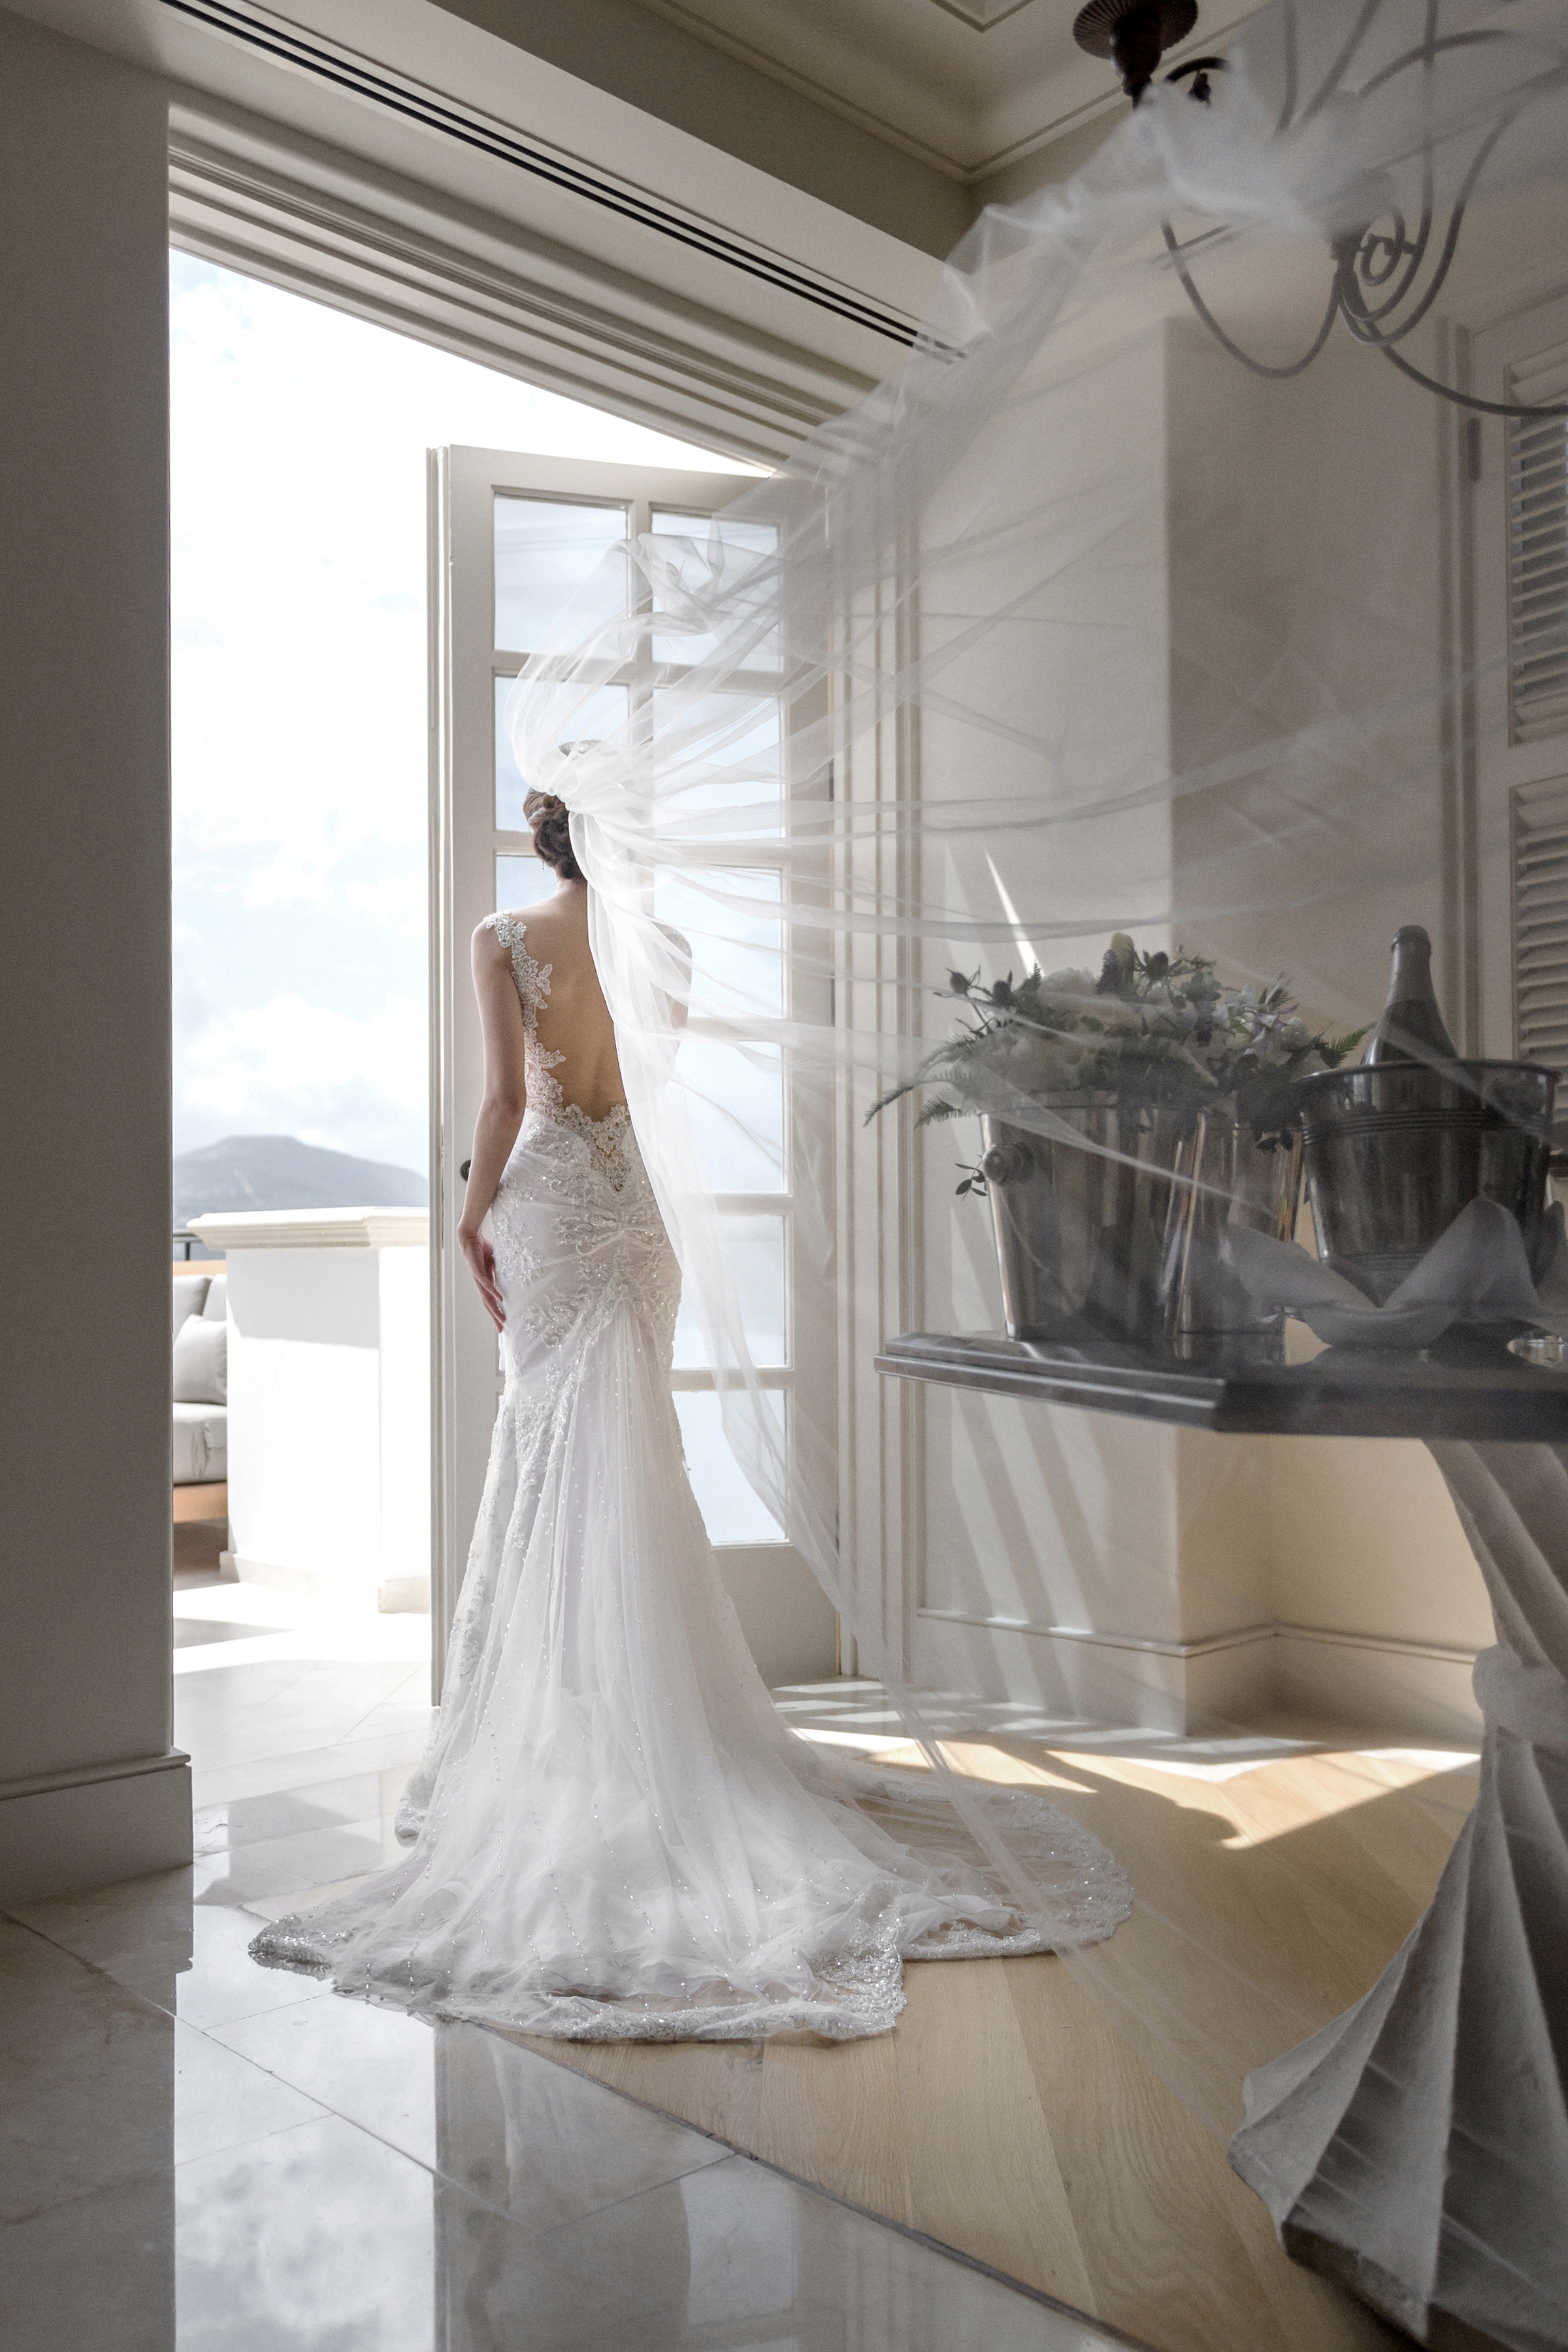 Elegant bride at balcony doors - photo by 37 Frames